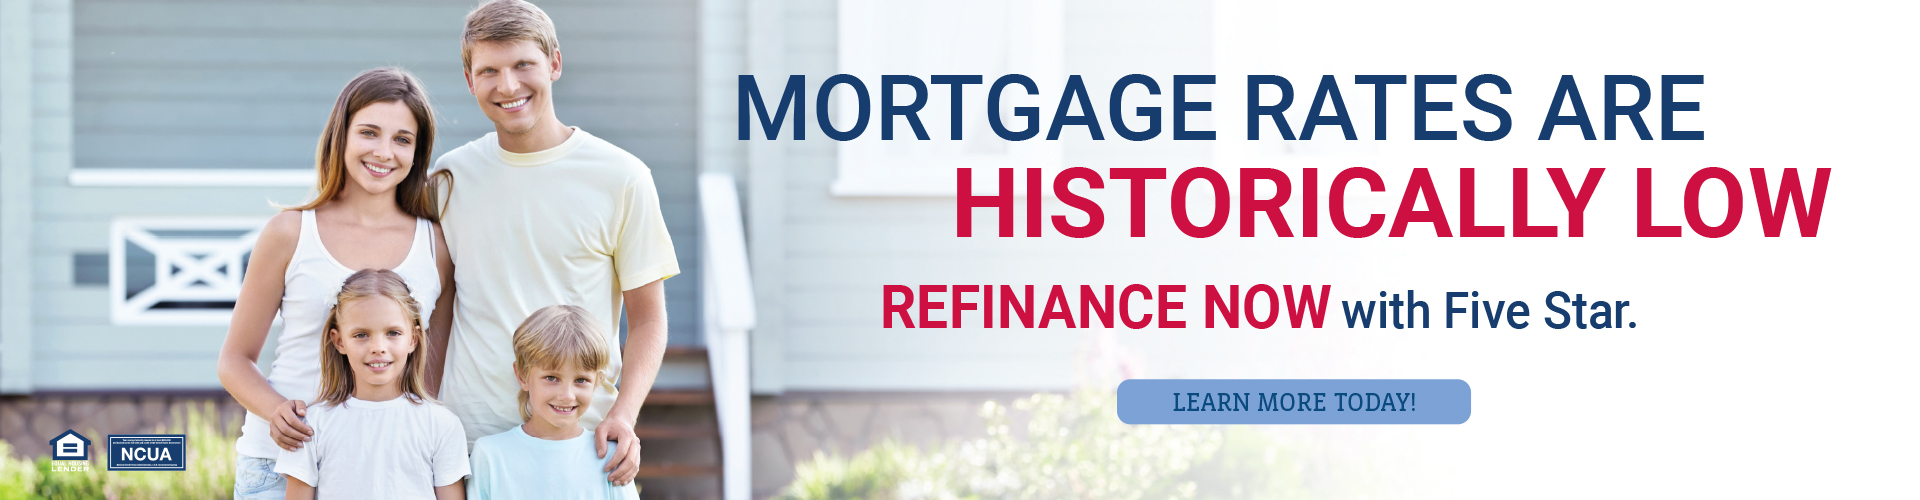 Mortgage rates are historically low.